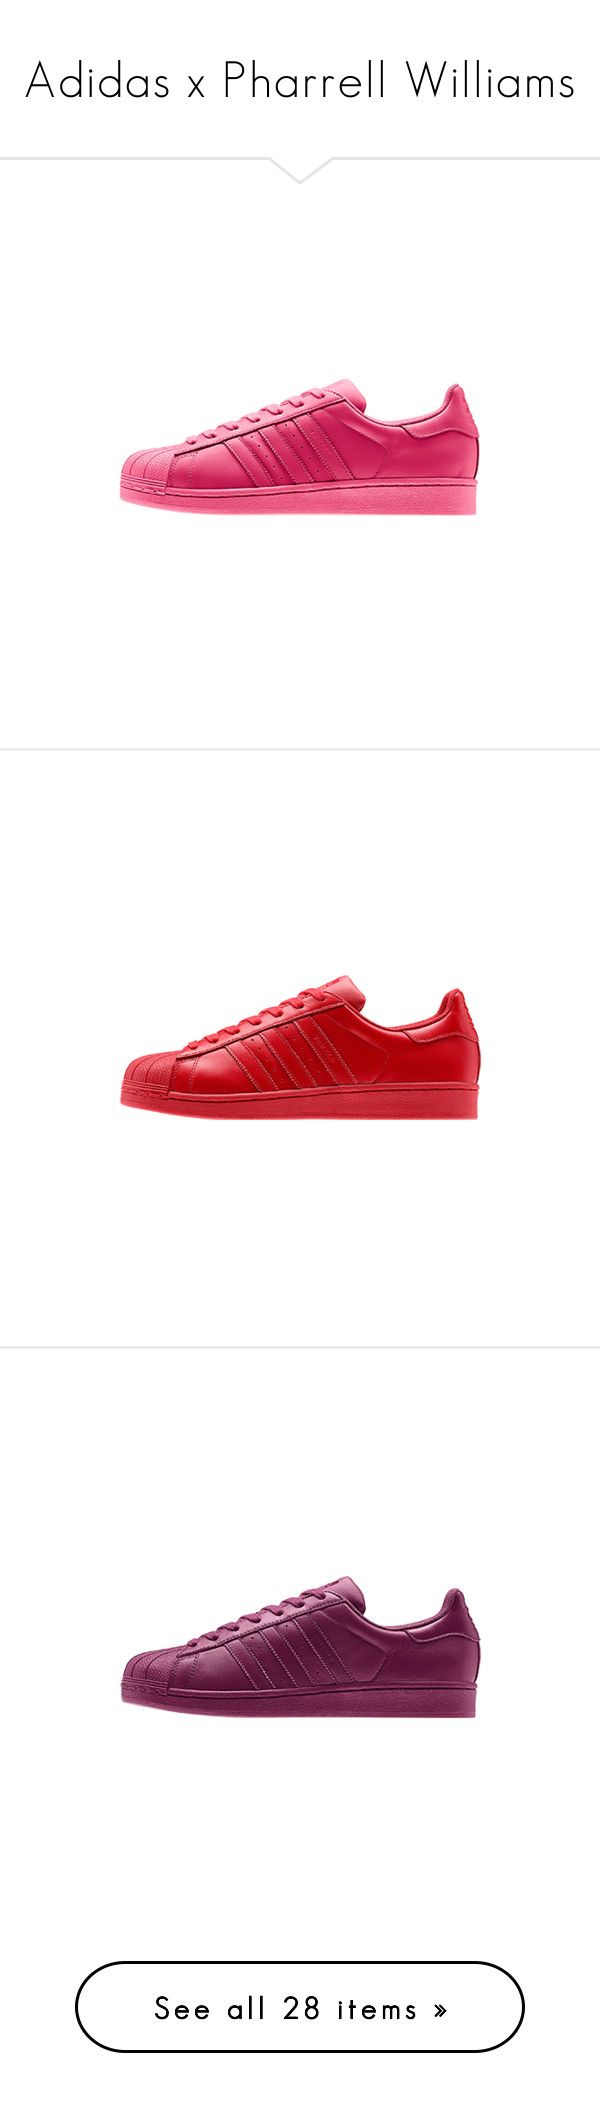 """Adidas x Pharrell Williams"" by daniaindria ❤ liked on Polyvore featuring adida, shoes, sneakers, adidas, men's fashion, men's shoes, men's sneakers, mens leather shoes, mens leather sneakers and adidas mens shoes"